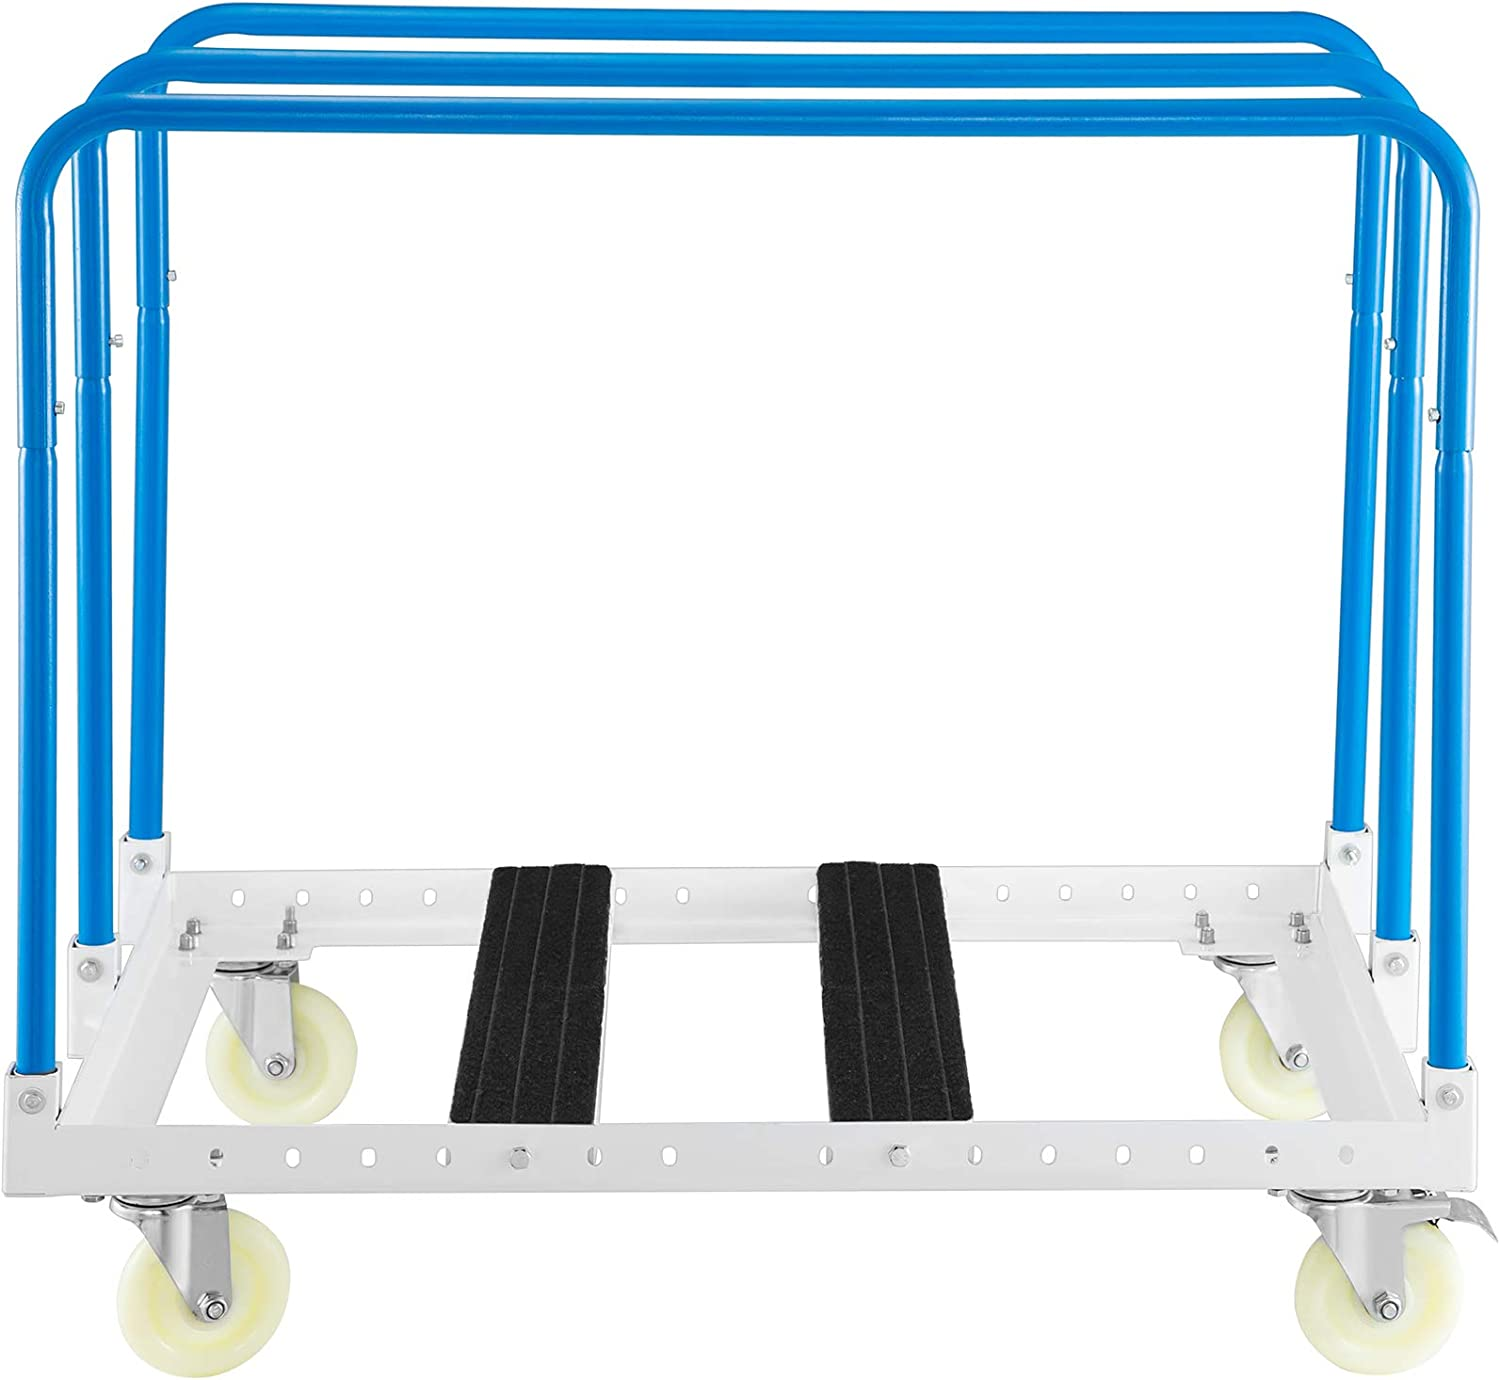 Moving Cart for Handling Drywall Sheet Cart 38 Inch Length x 24 Inch Width Steel Panel Truck with 3 Uprights in Blue VEVOR Panel Cart Dolly 1000lbs Capacity Panel Mover with 4 Swivel Casters